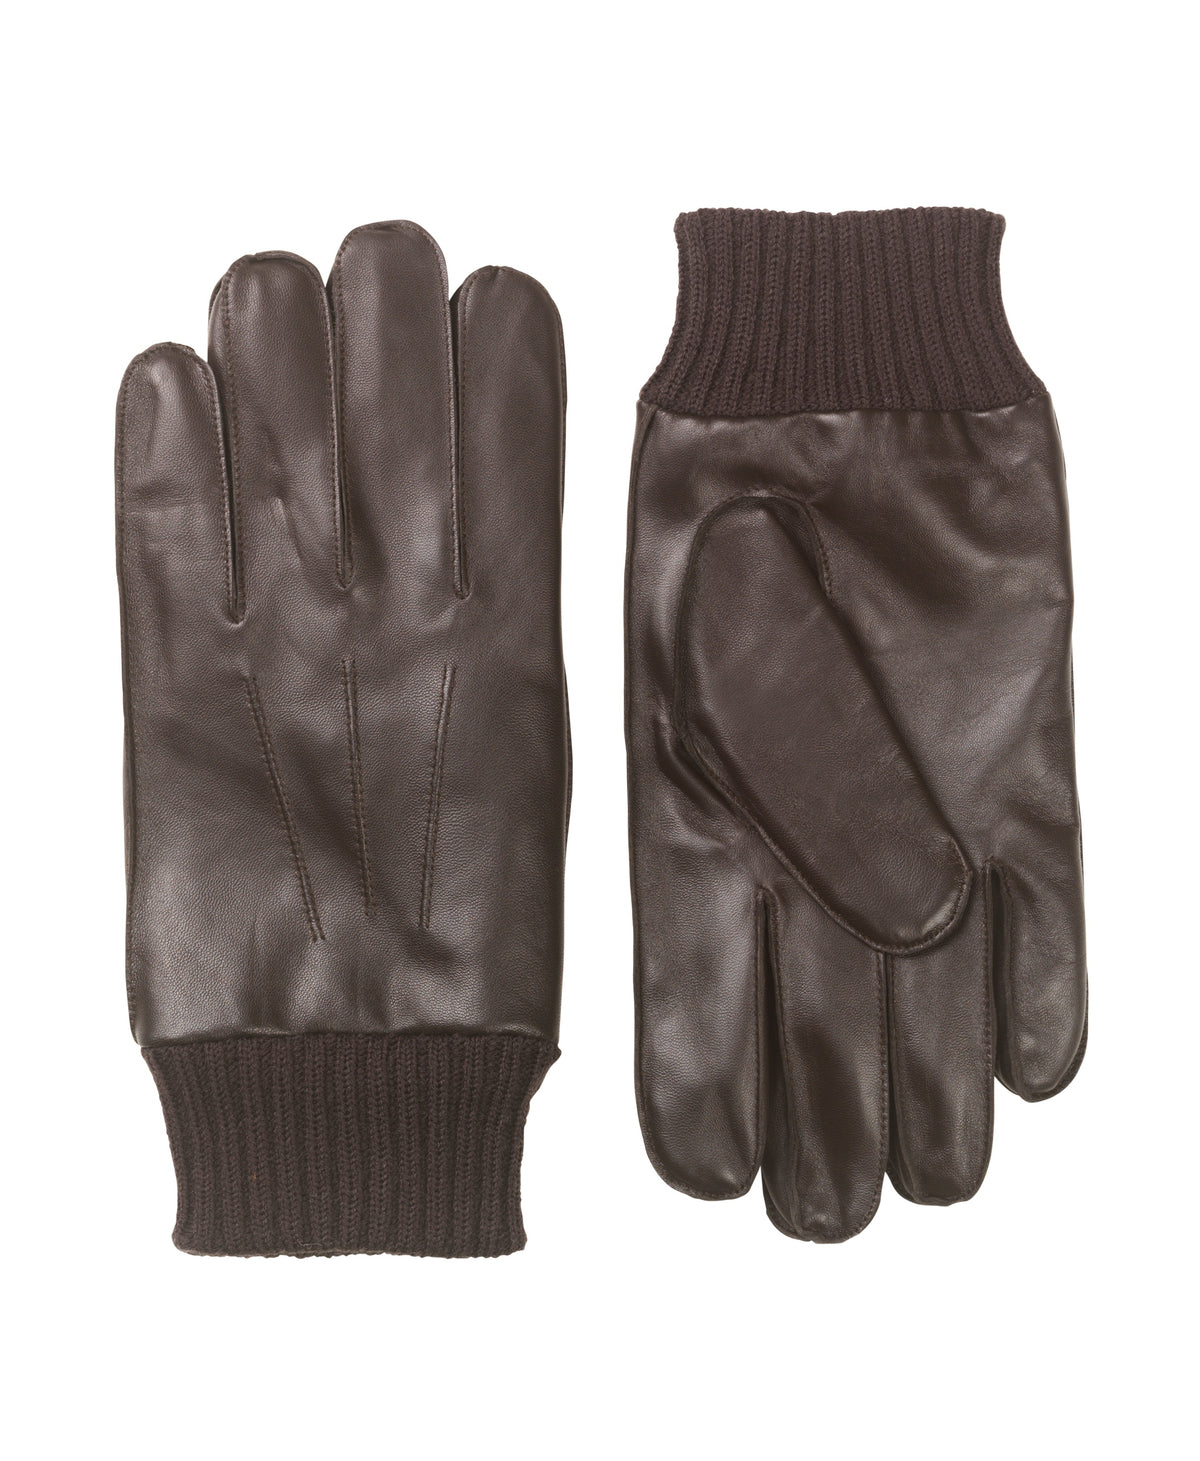 Hackney Gloves - Dark Brown